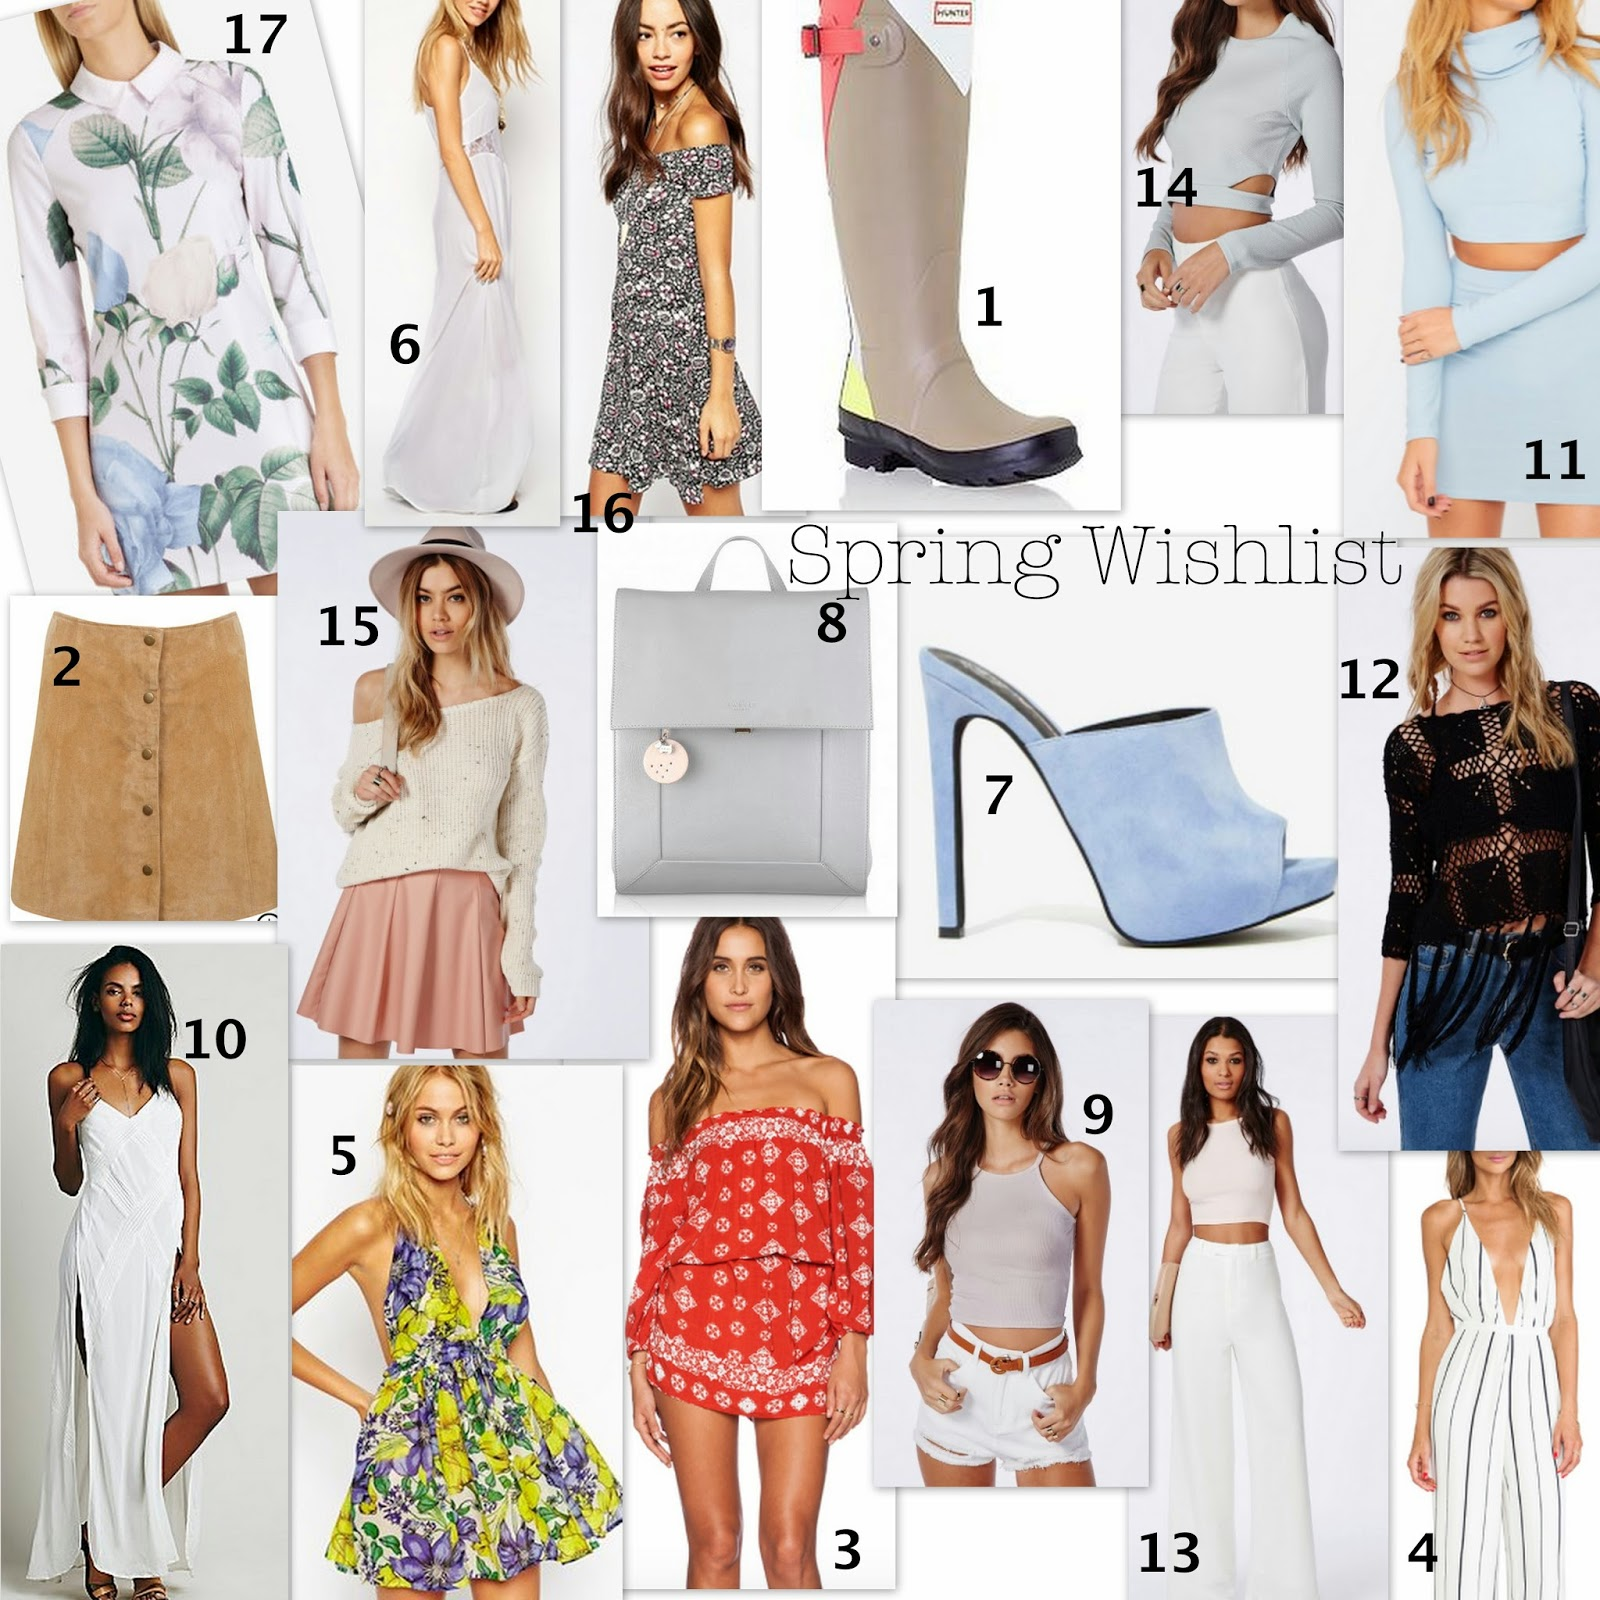 Spring fashion inspiration